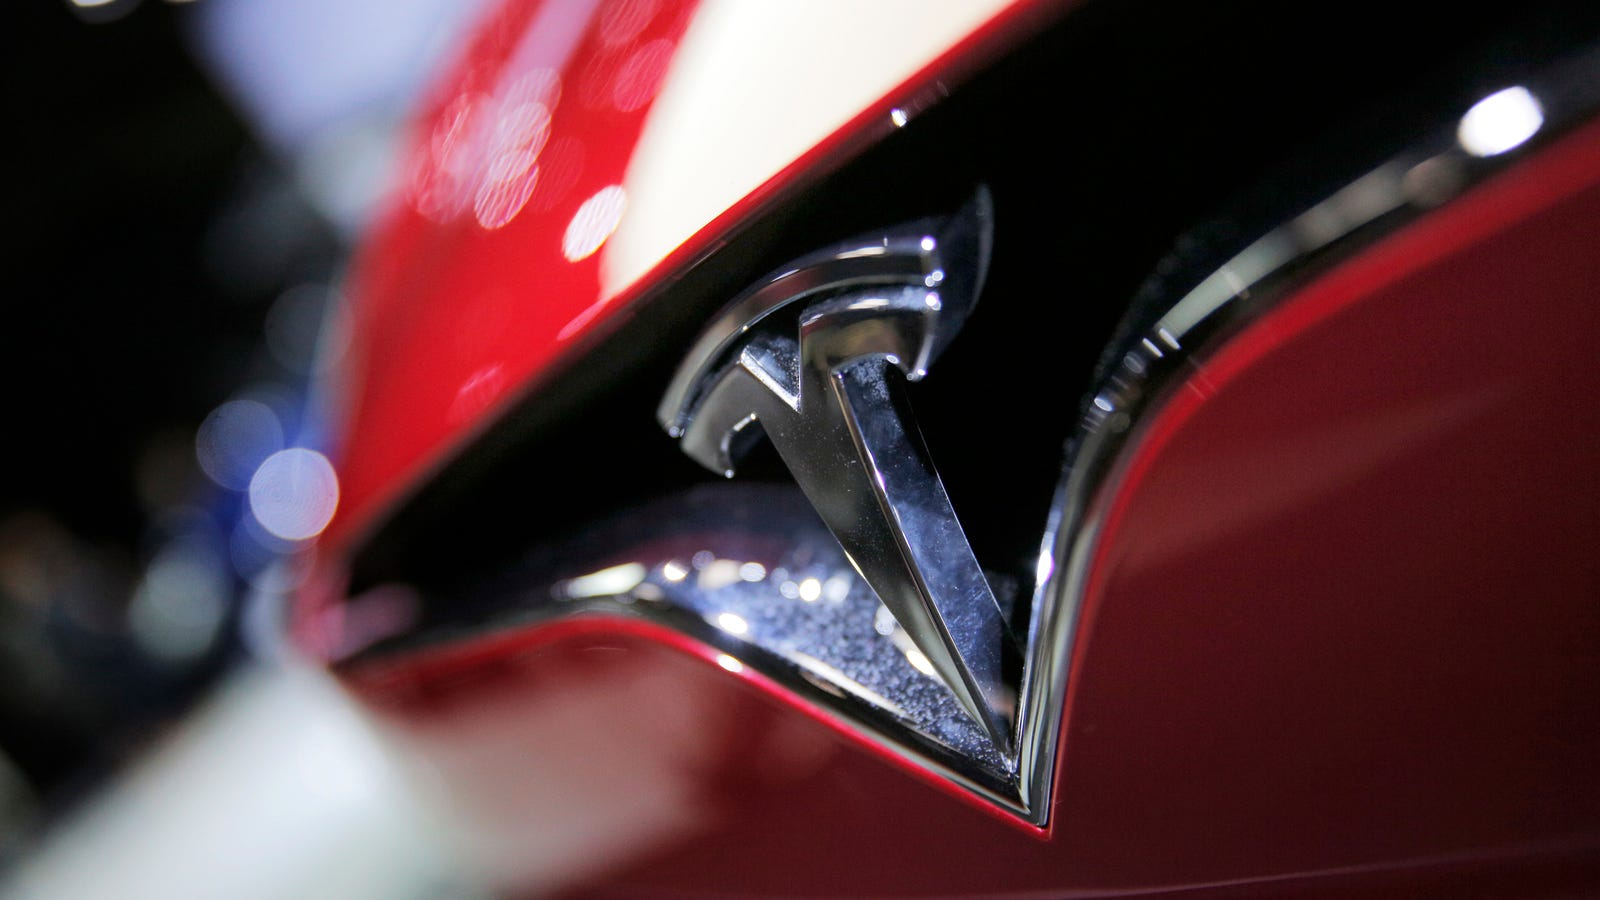 Two More High-Ranking Tesla Employees Are Out Following Model 3 Production Issues